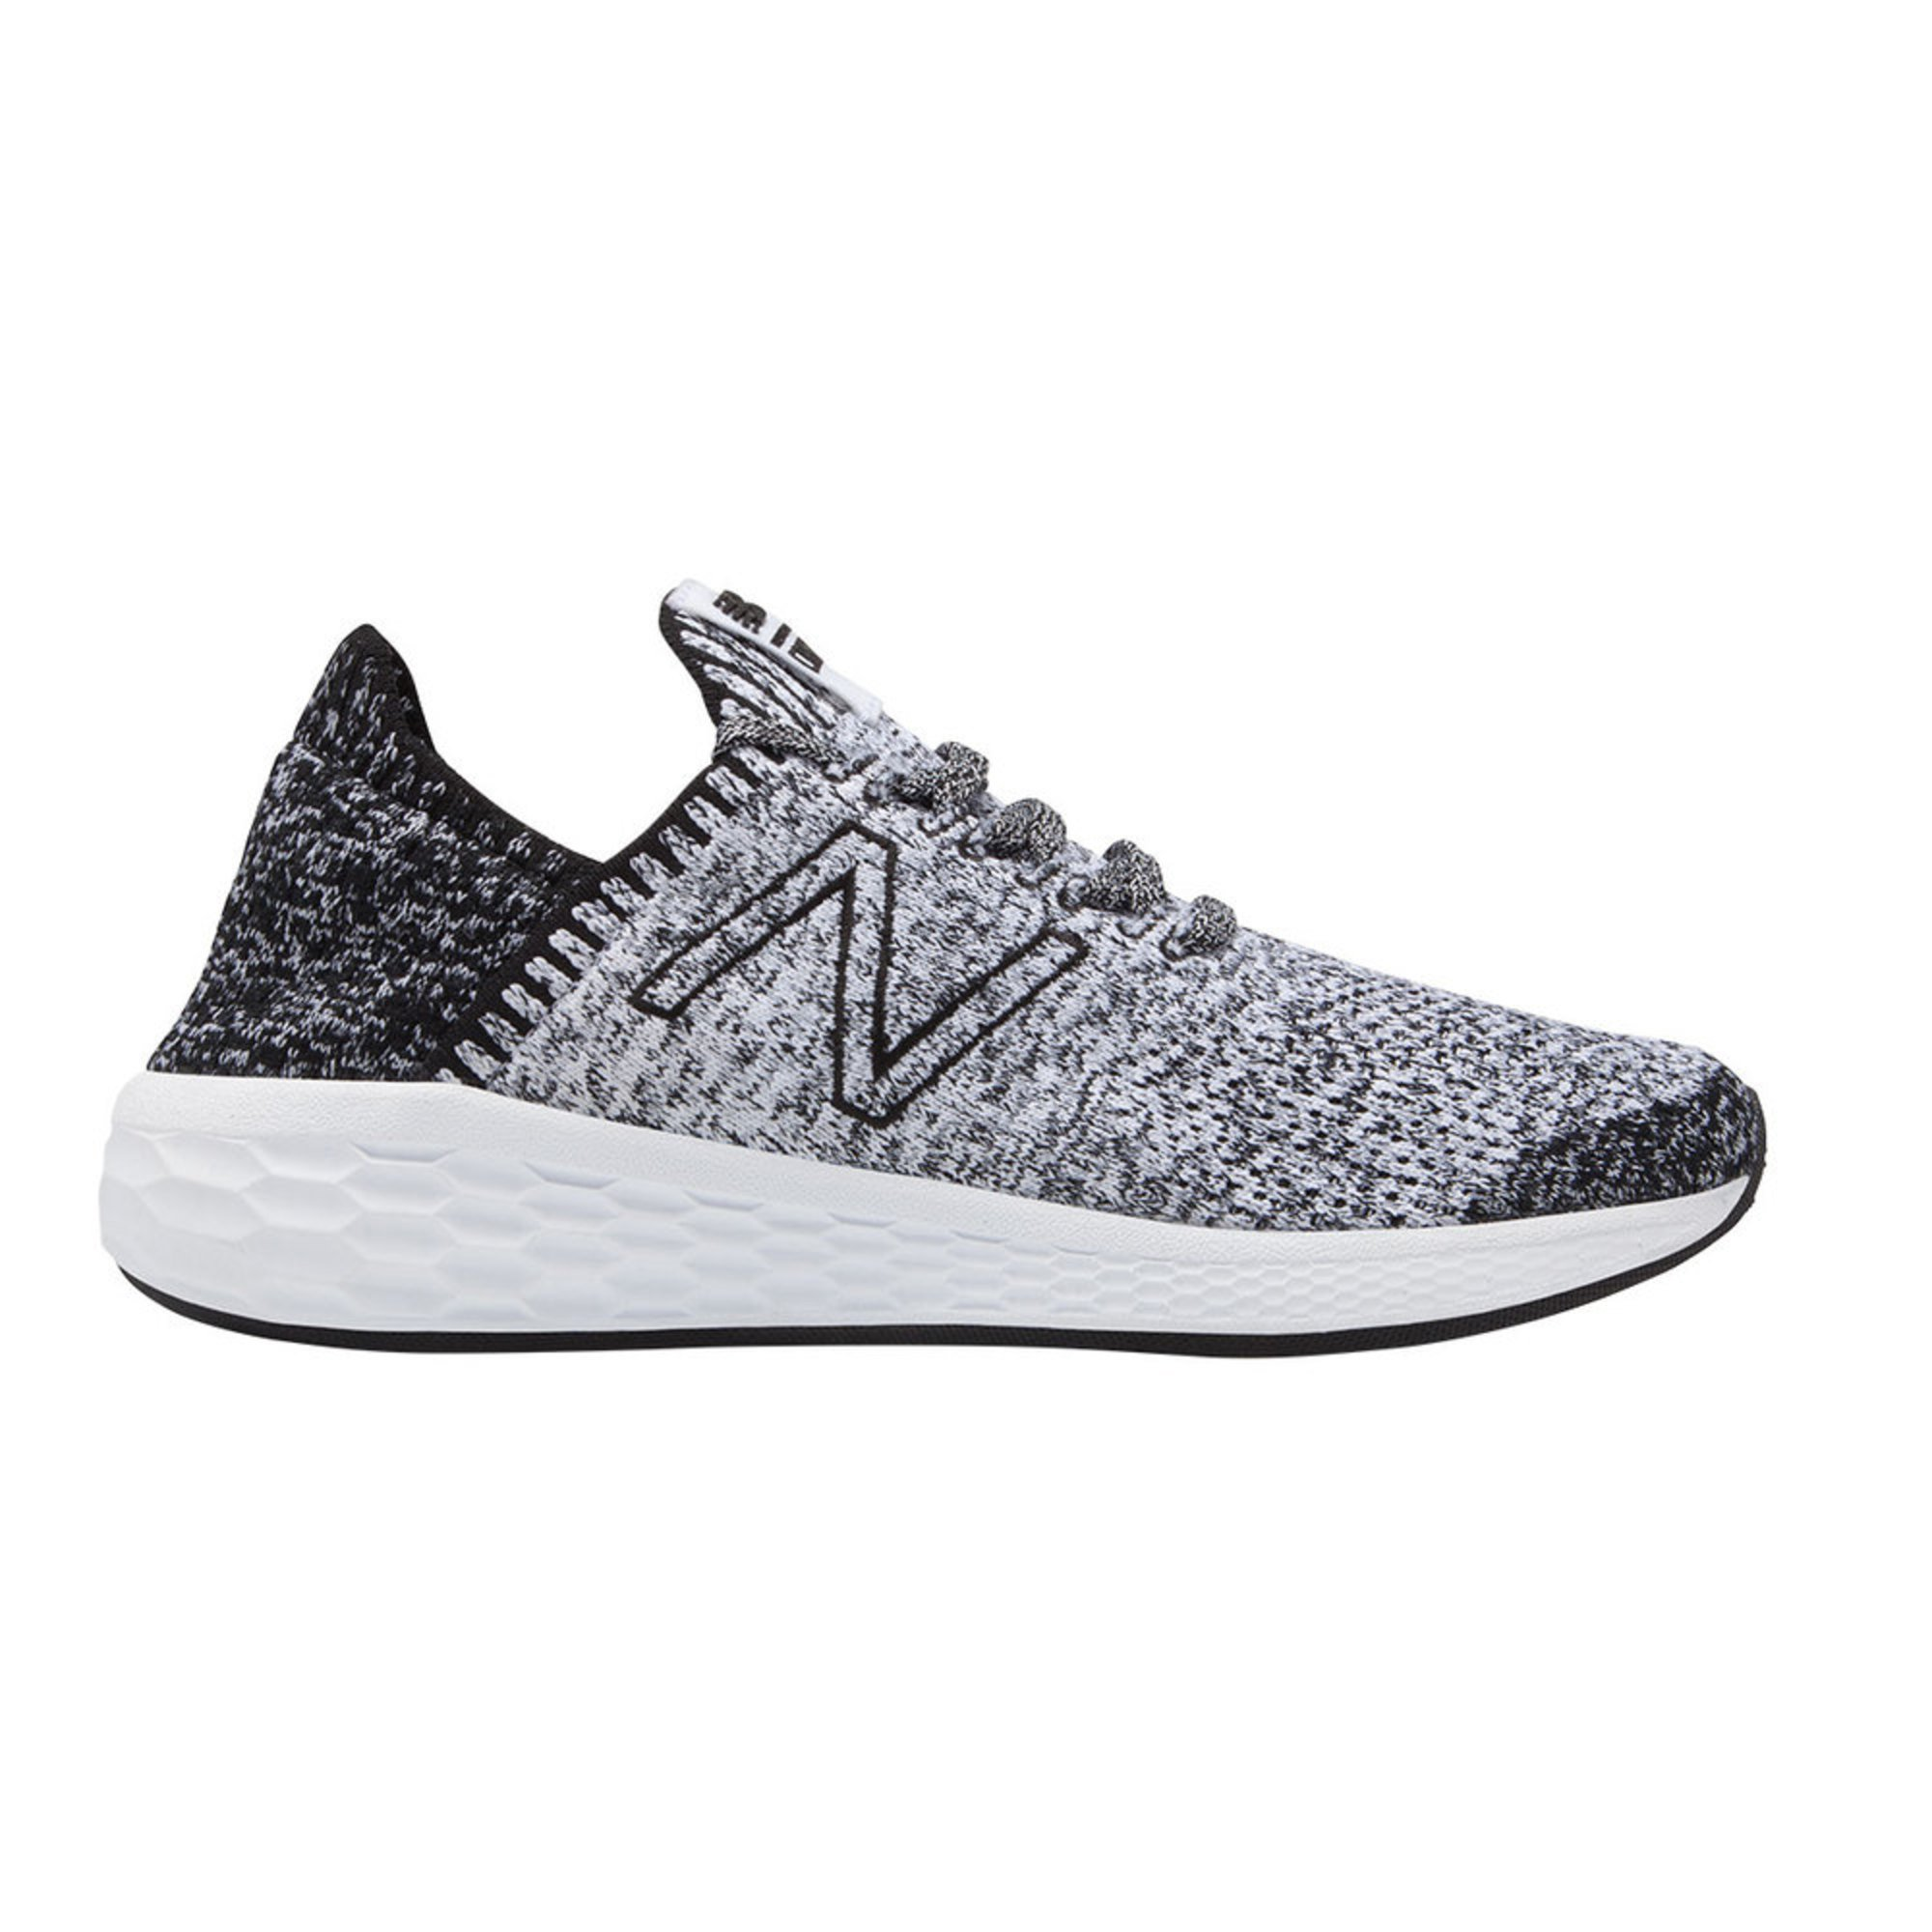 5cb3cebbcb07 New Balance. New Balance Women s Fresh Foam Cruz v2 Lifestyle Shoe